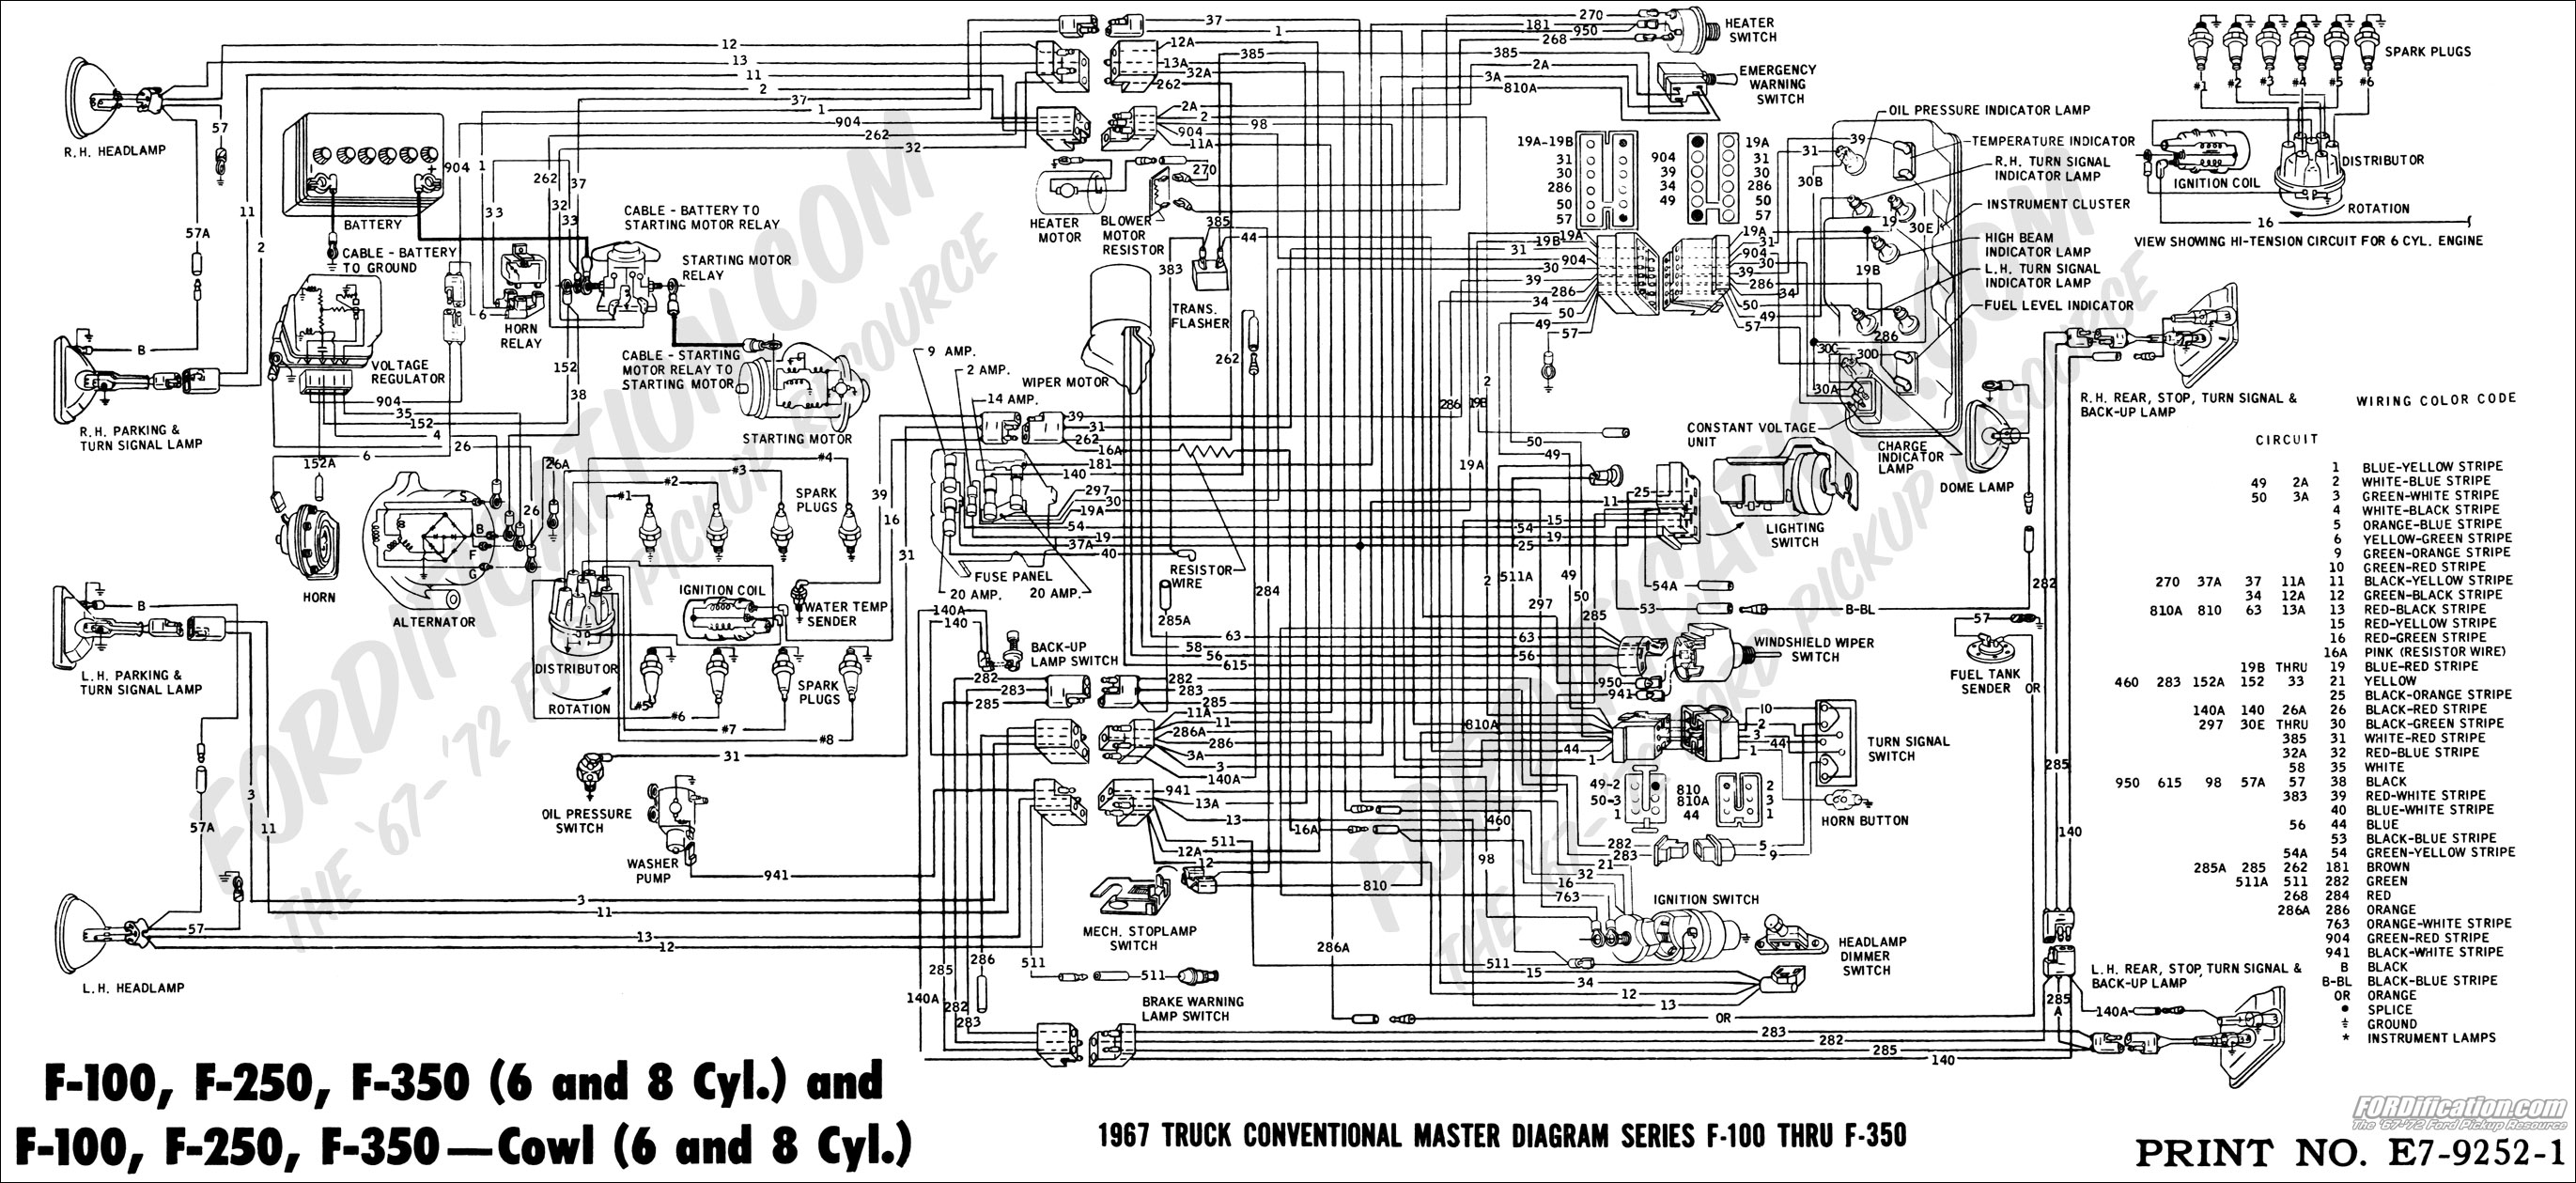 67masterdiagram ford truck technical drawings and schematics section h wiring ford truck wiring diagrams free at webbmarketing.co